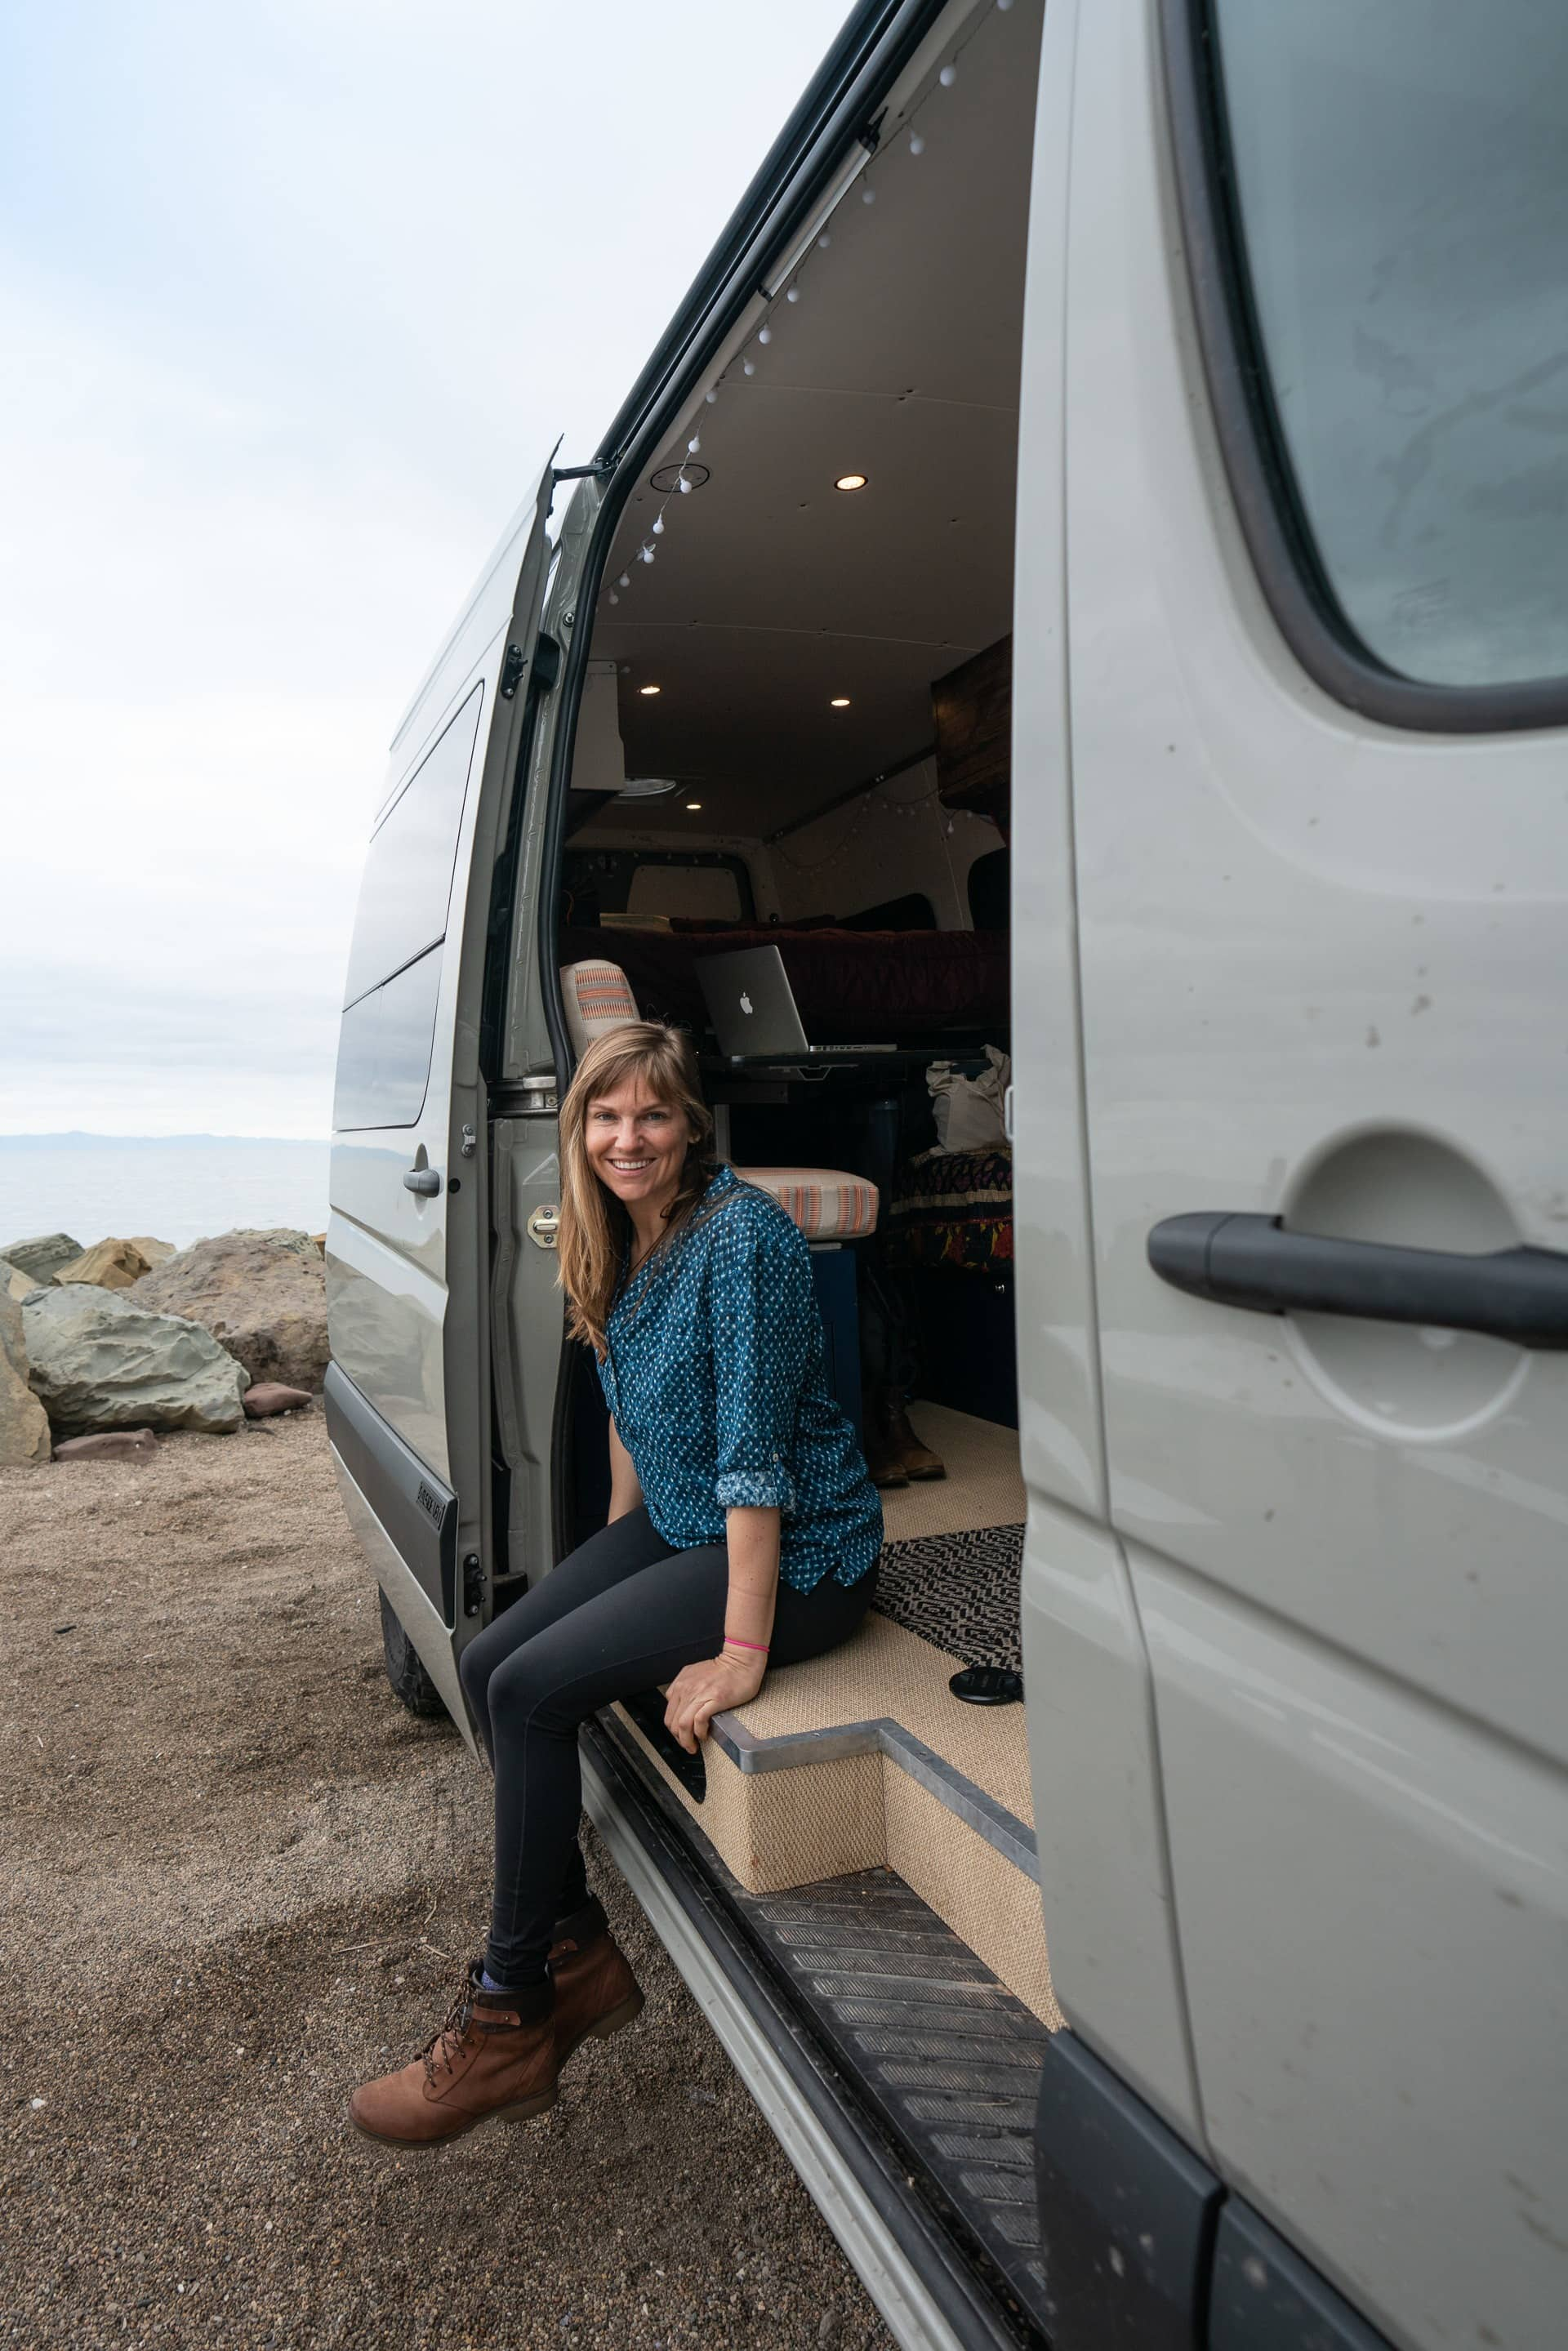 Packing for van life? Learn what clothes you need with this functional and versatile van life clothing checklist.